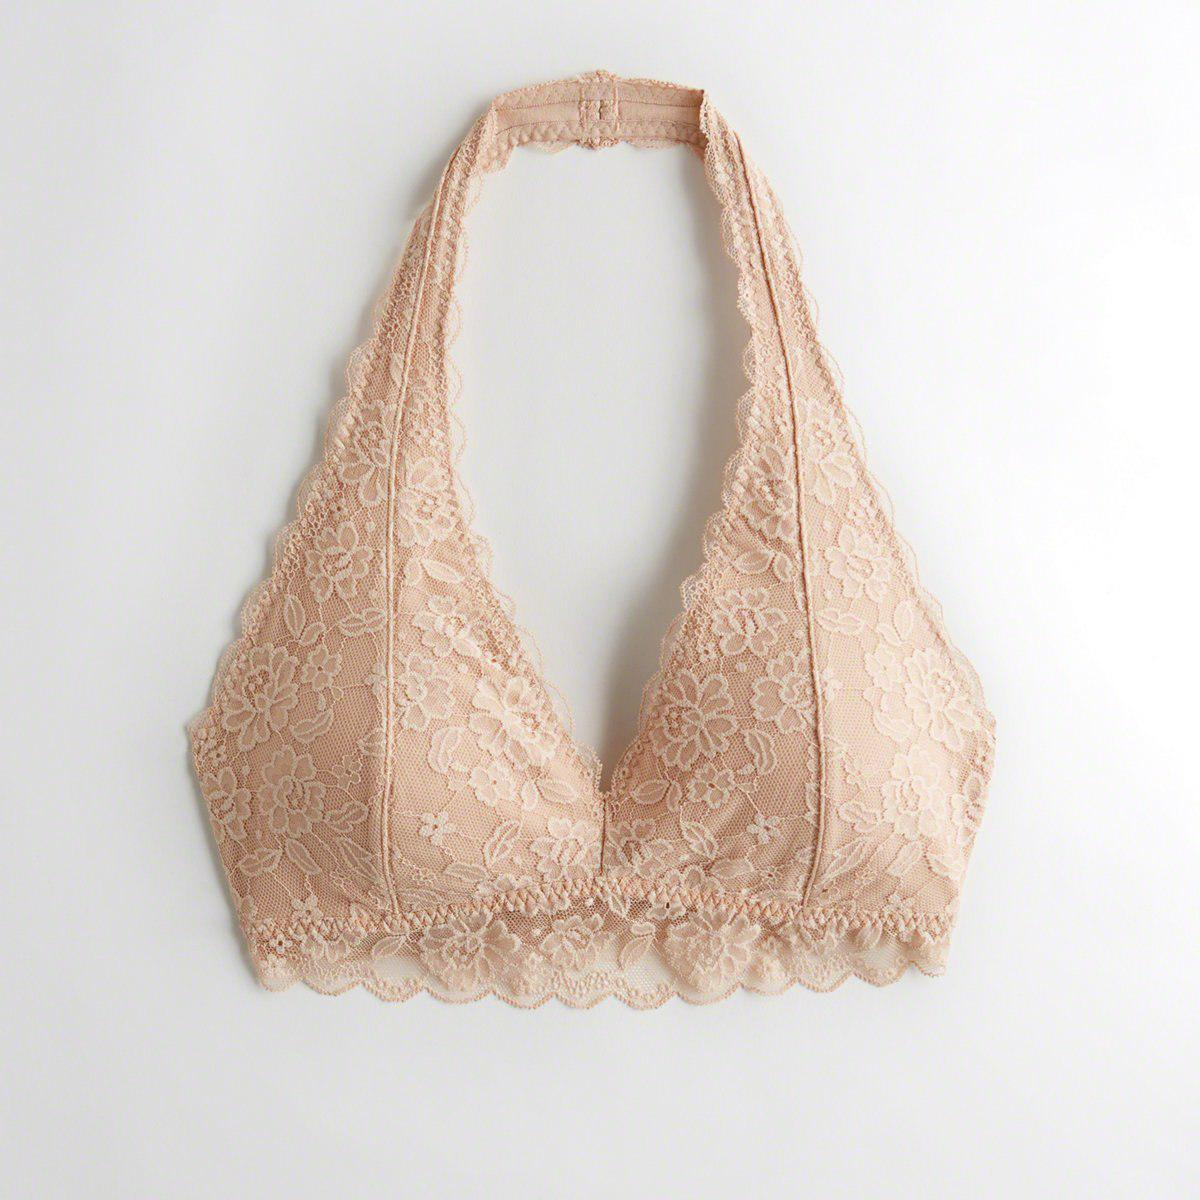 13130d12d1765 Hollister. Women s Natural Girls Lace Halter Bralette With Removable Pads  From Hollister